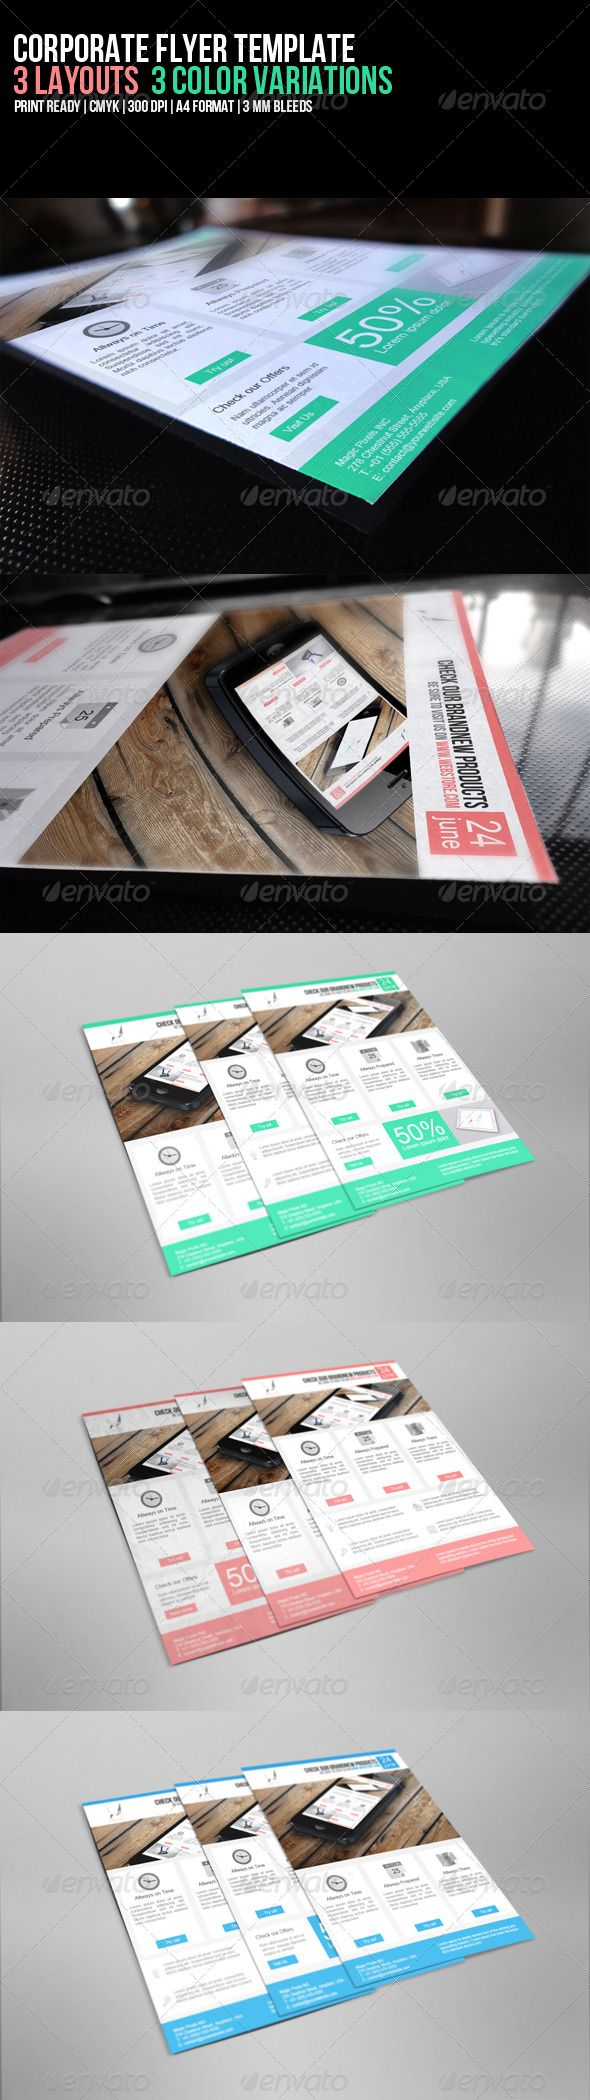 95 best Print Templates images on Pinterest | Print templates, Flyer ...